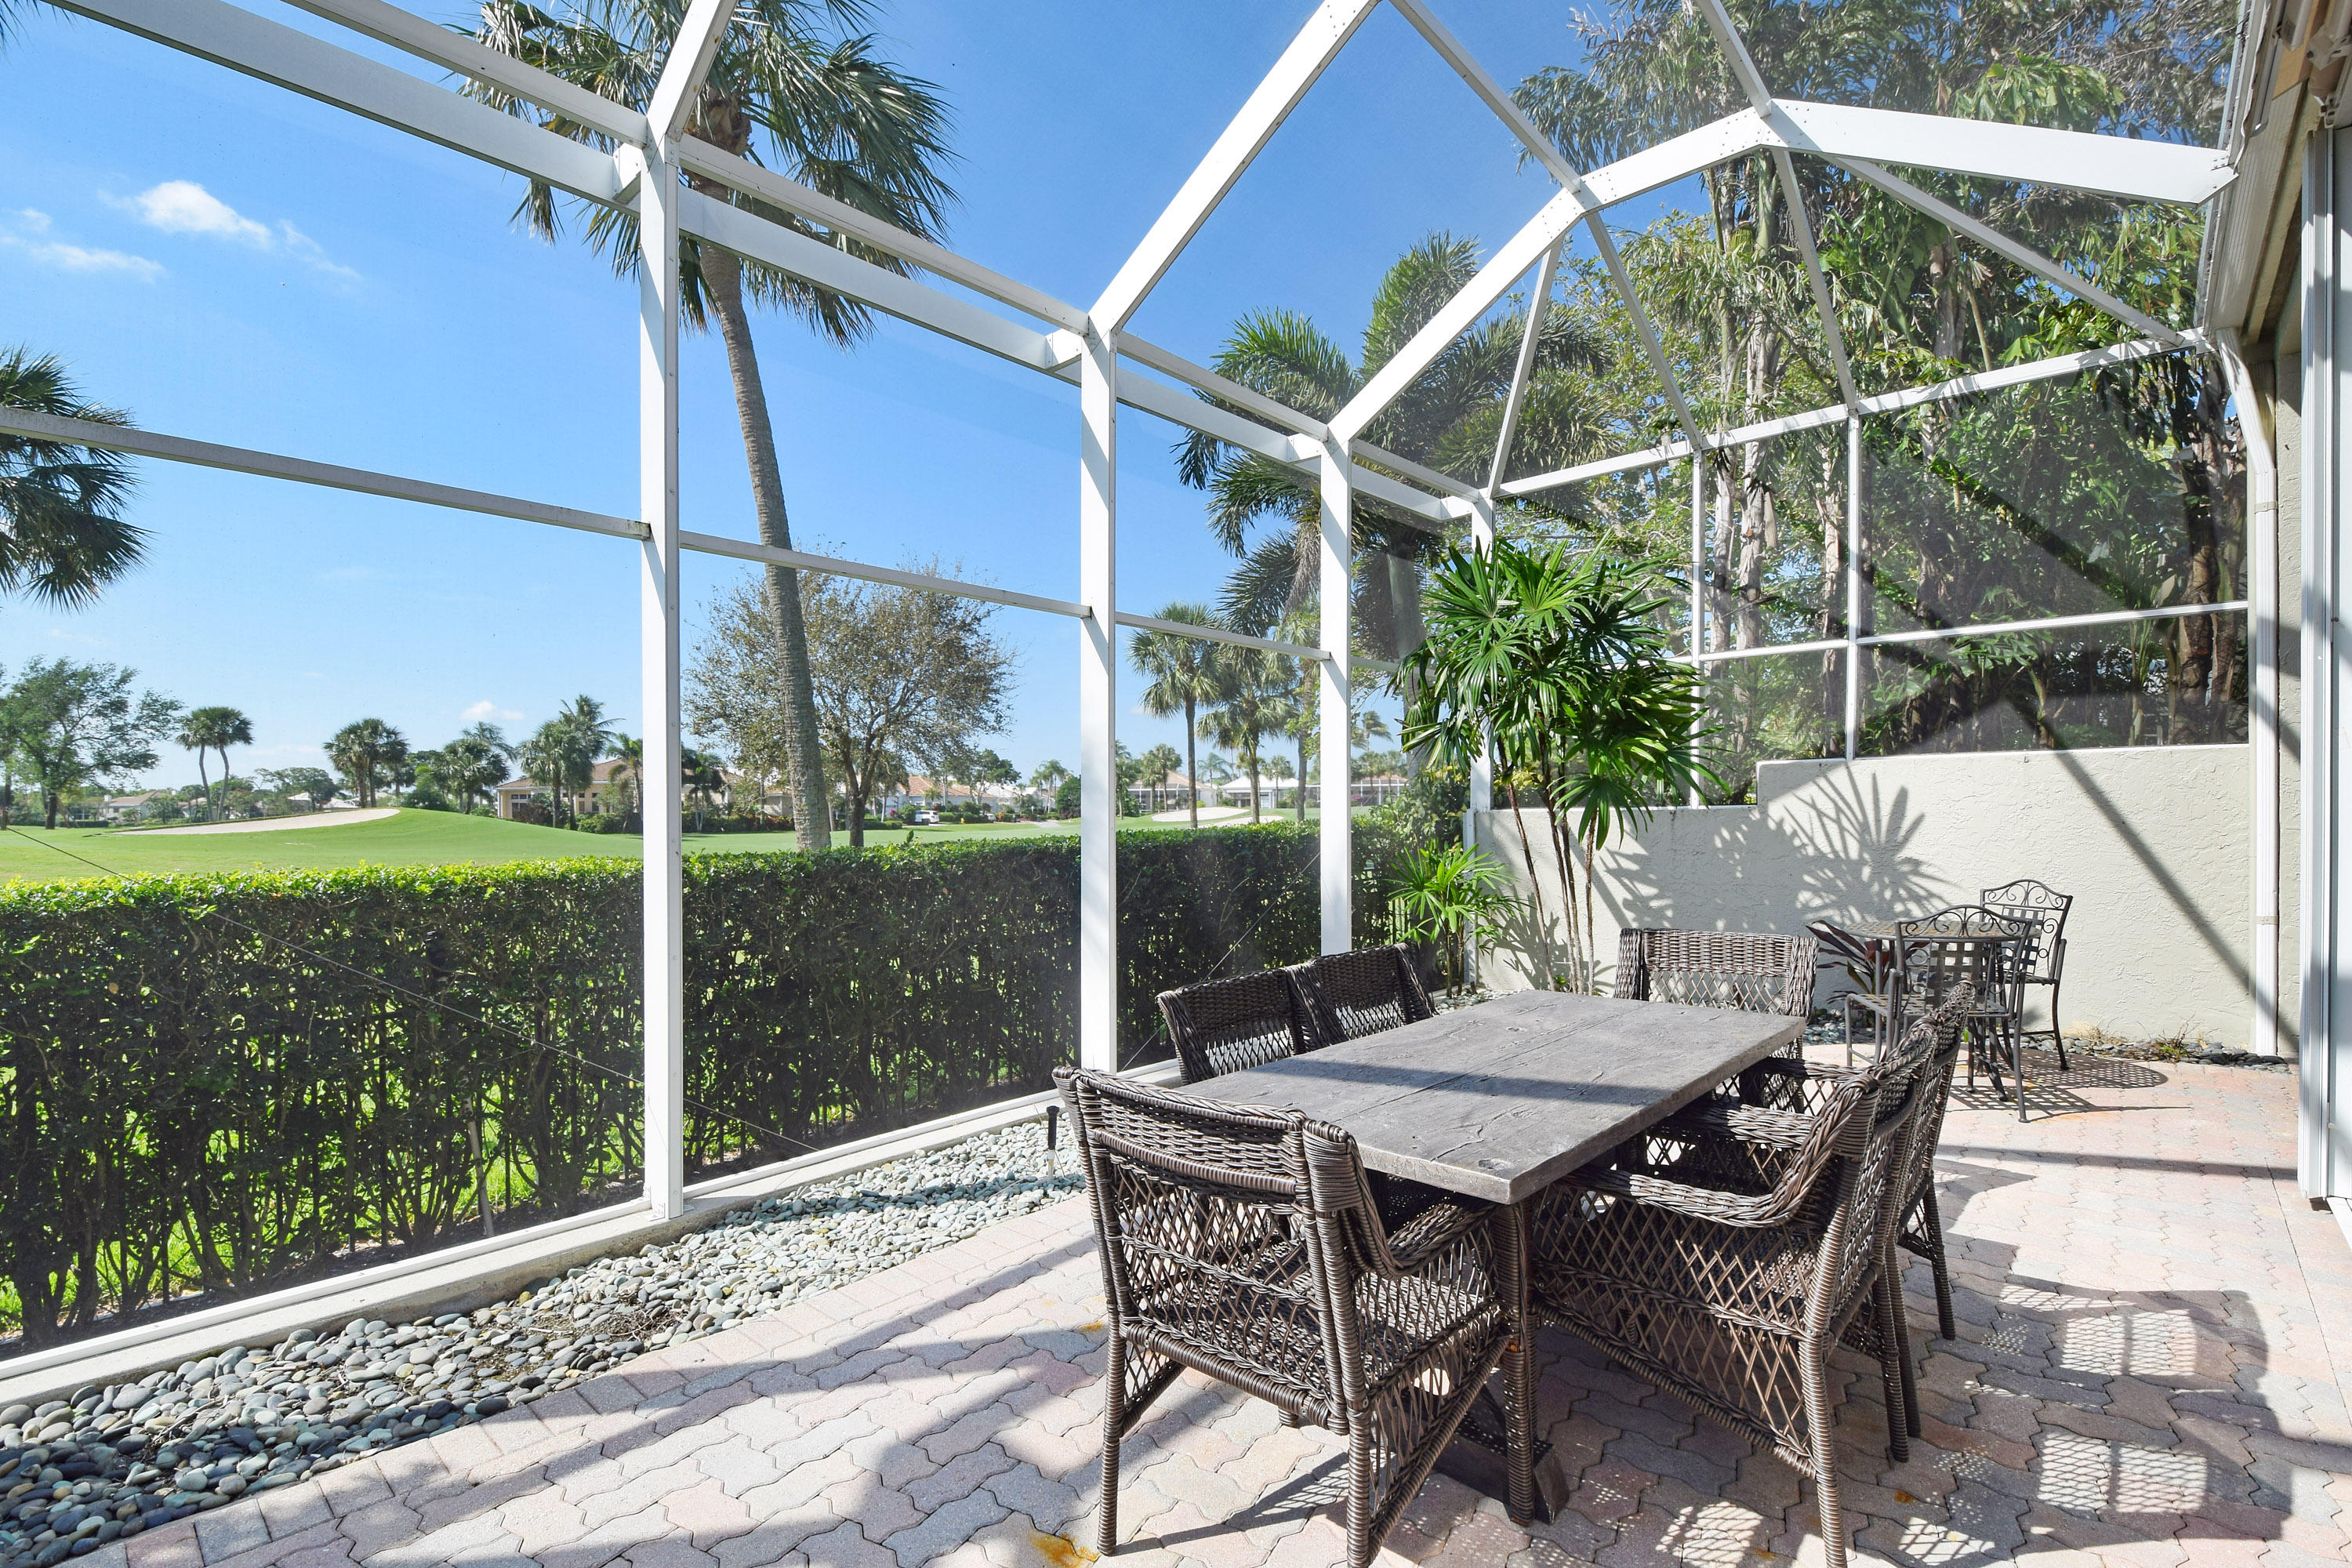 111 Coral Cay Drive, Palm Beach Gardens, Florida 33418, 3 Bedrooms Bedrooms, ,3 BathroomsBathrooms,Single Family,For Sale,CORAL CAY,Coral Cay,RX-10463686